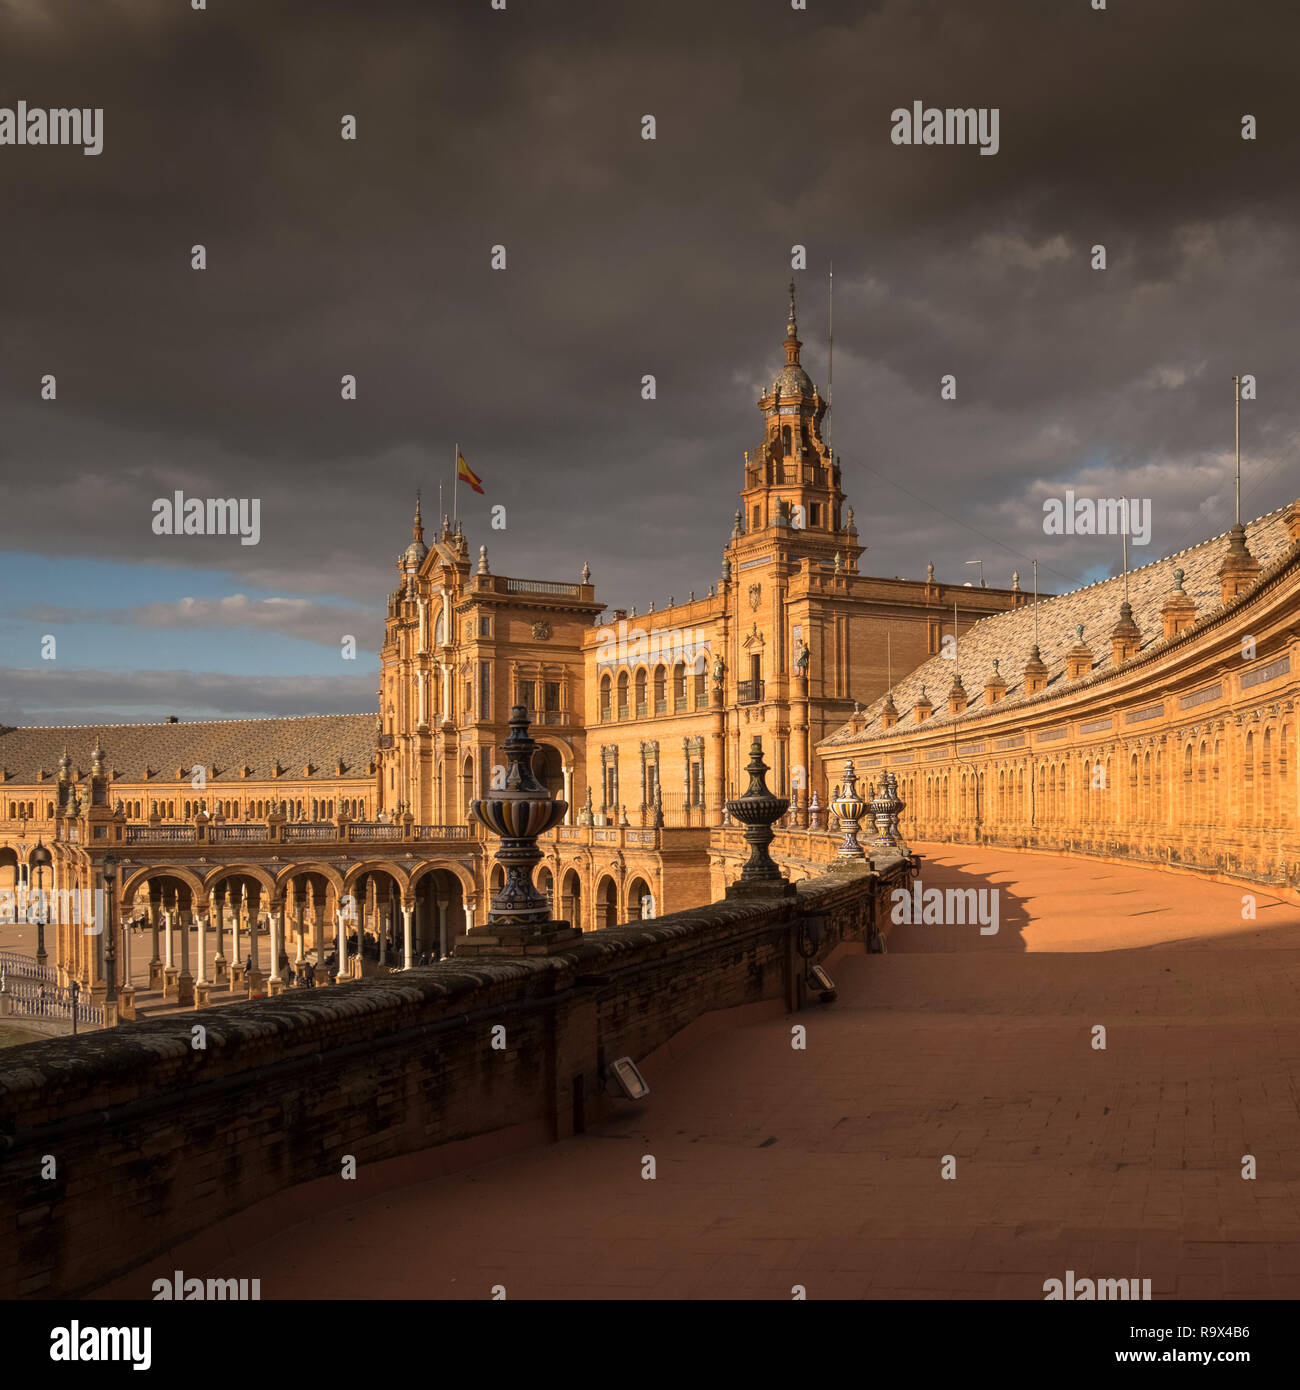 Principal building of Plaza de Espana, built in 1928 for the 1929 Ibero-American Exposition, a landmark example of architecture in Seville, Spain Stock Photo